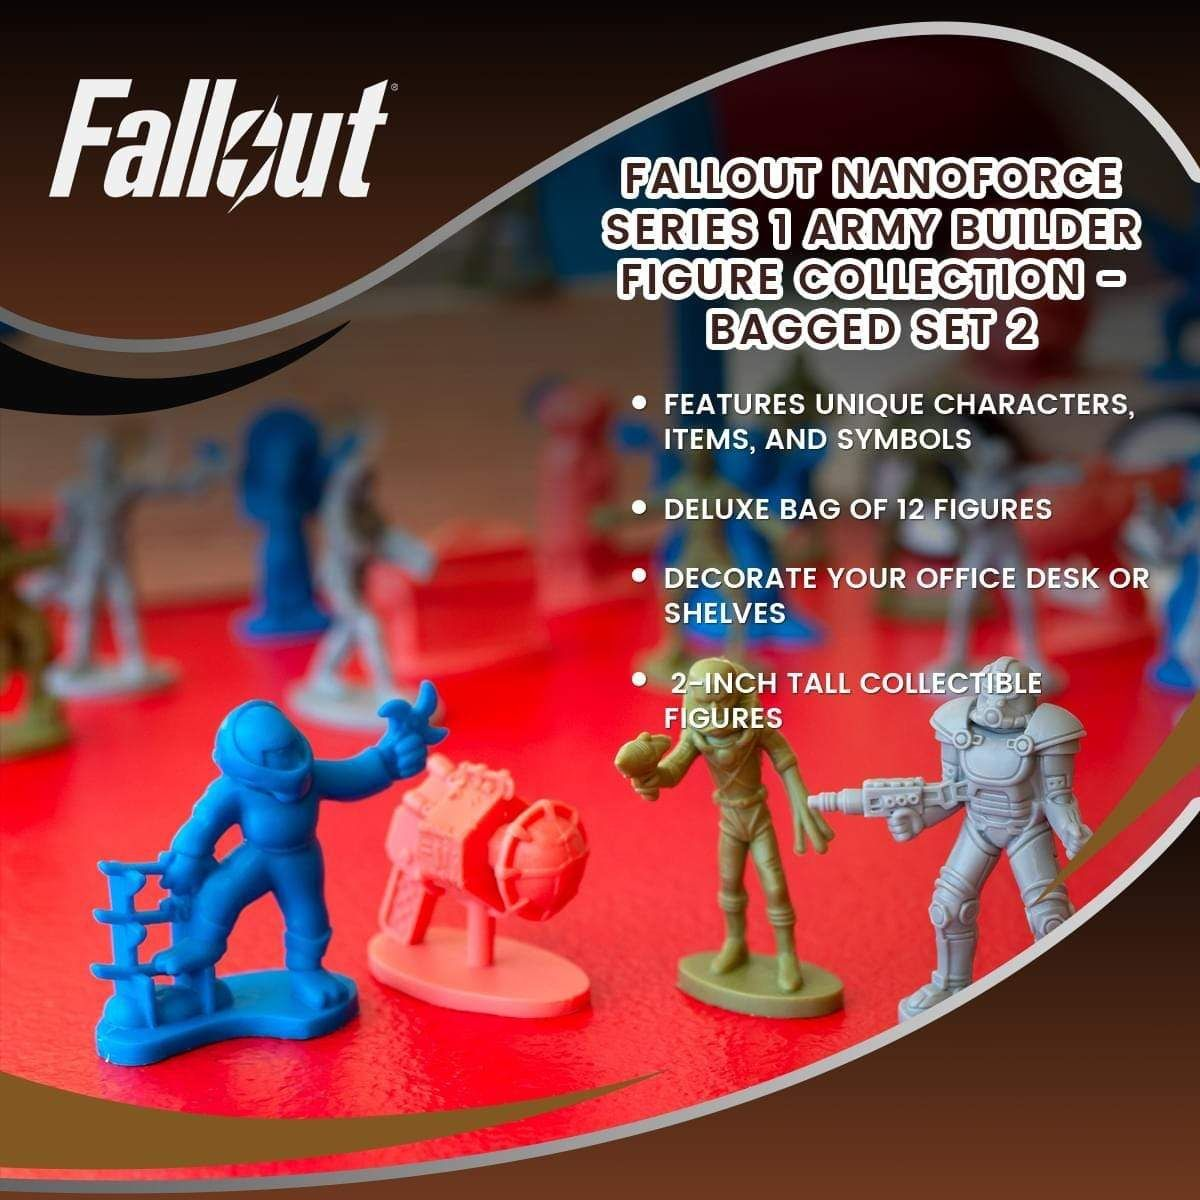 Fallout Nanoforce Series 1 Army Builder Figure Collection Bagged Set 2 In 2021 Bag Set Unique Stocking Stuffers Army